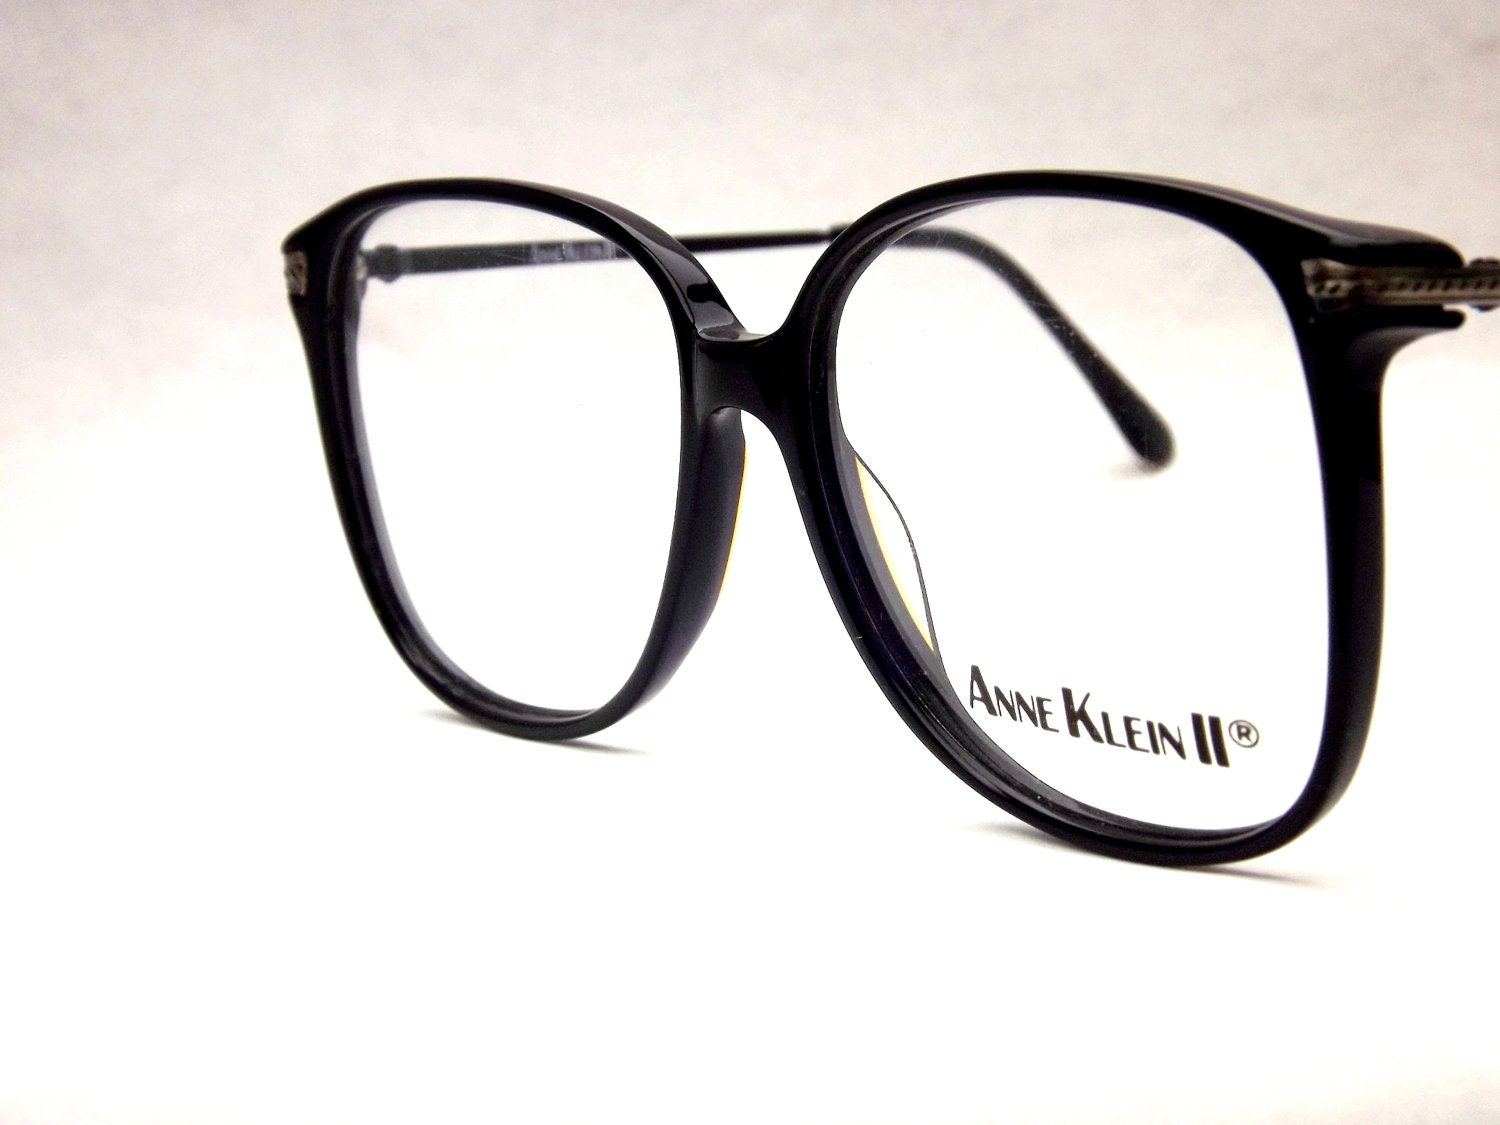 Are Big Eyeglass Frames In Style : Big Square Eyeglasses Designer Anne Klein 80s Vintage / Womens